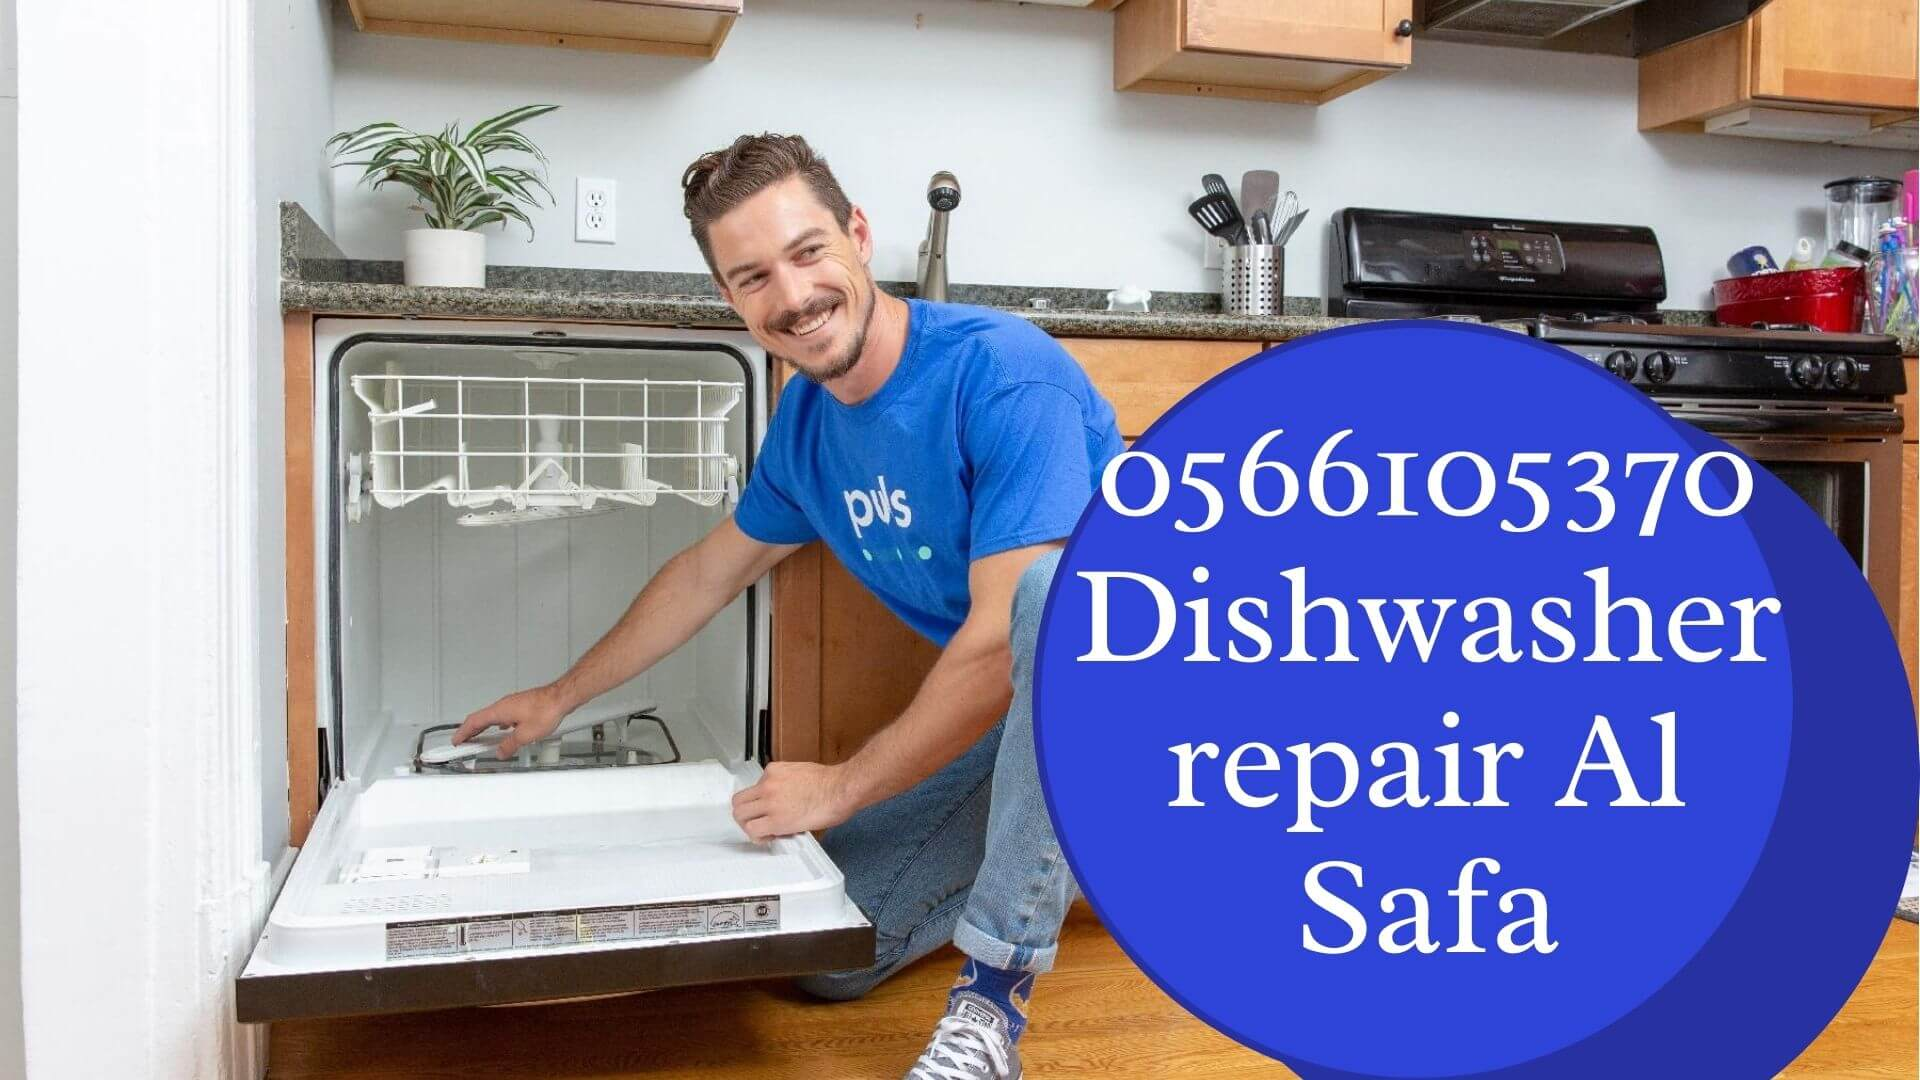 Dishwasher repair Al Safa